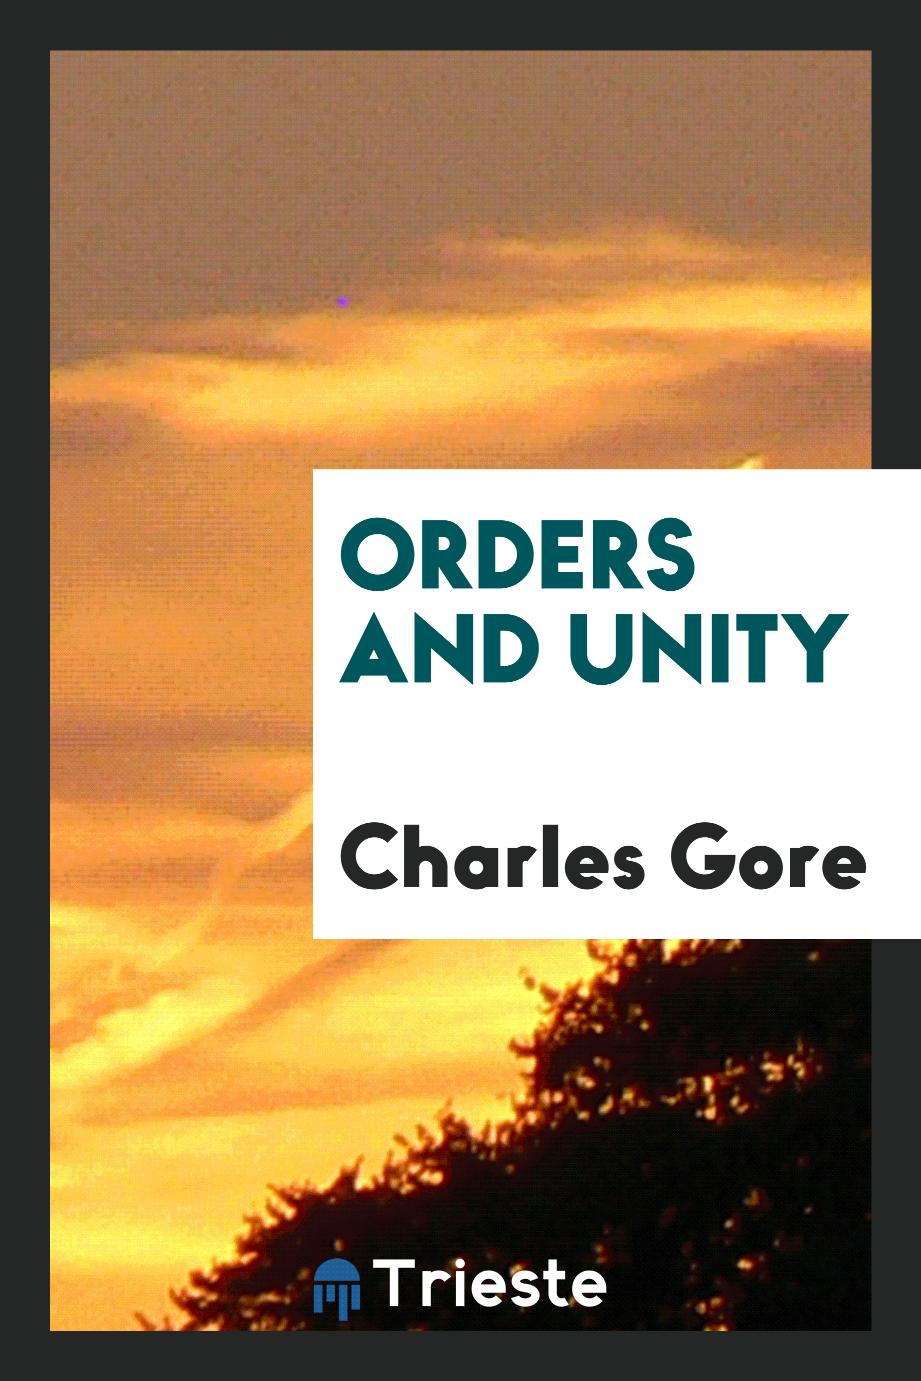 Orders and unity